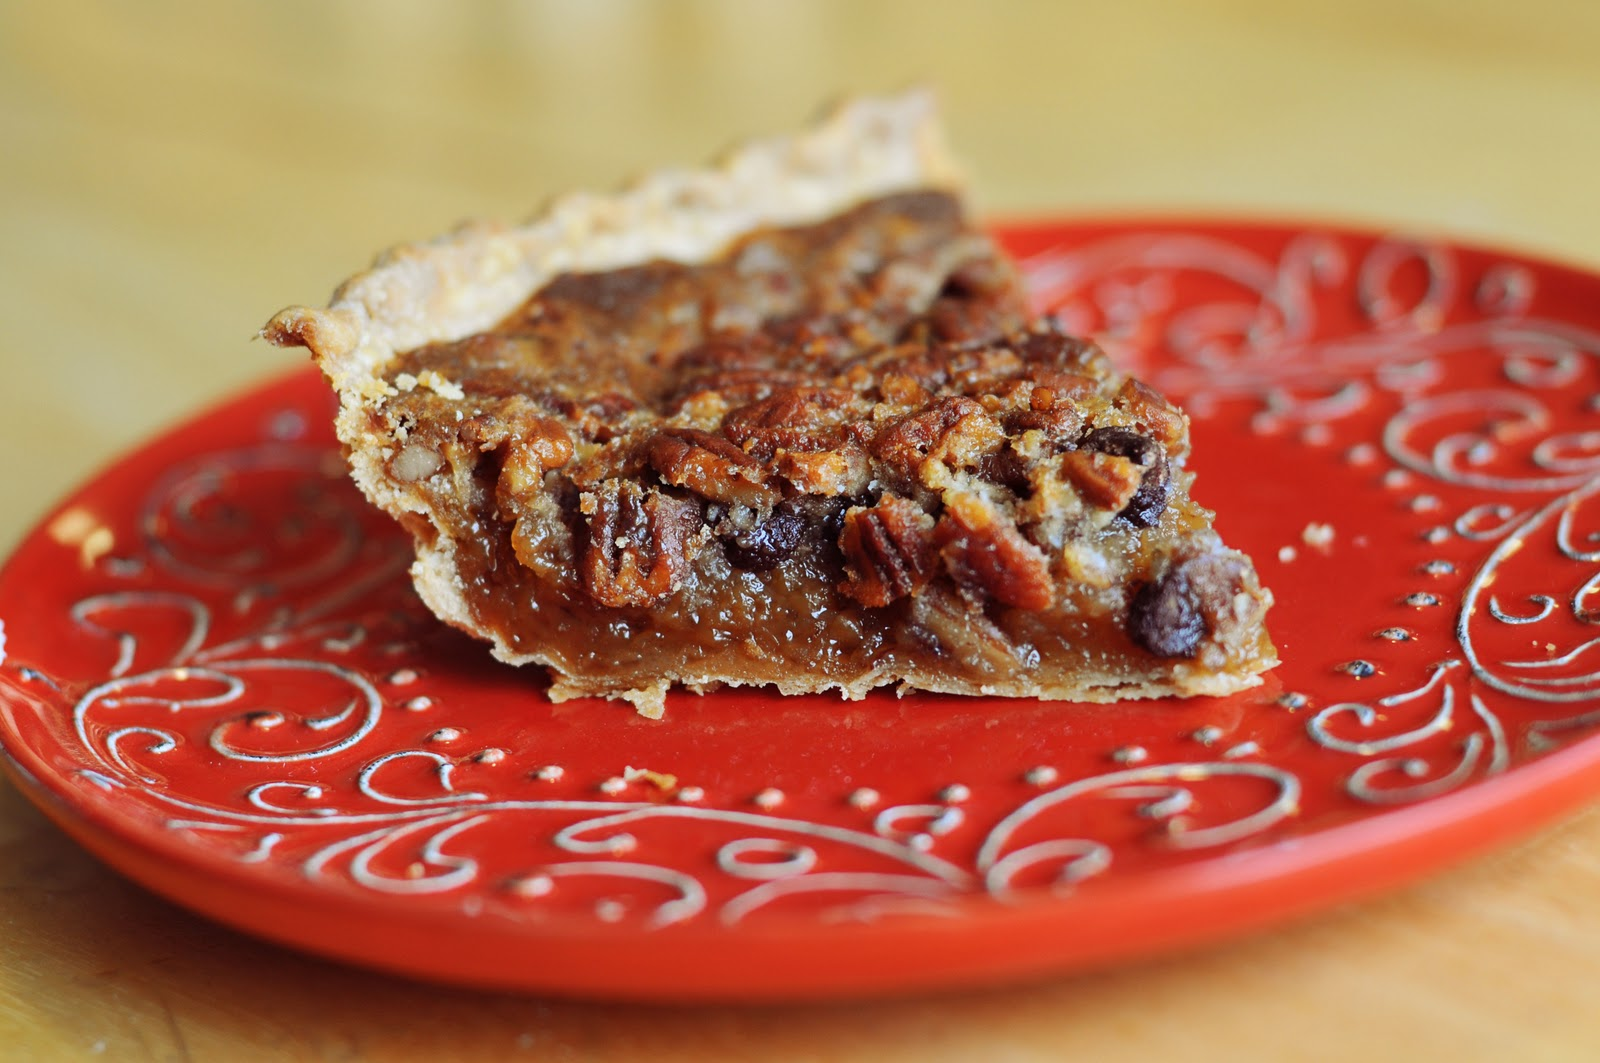 pecan pie is my husband s favorite pie so of course i had to make one